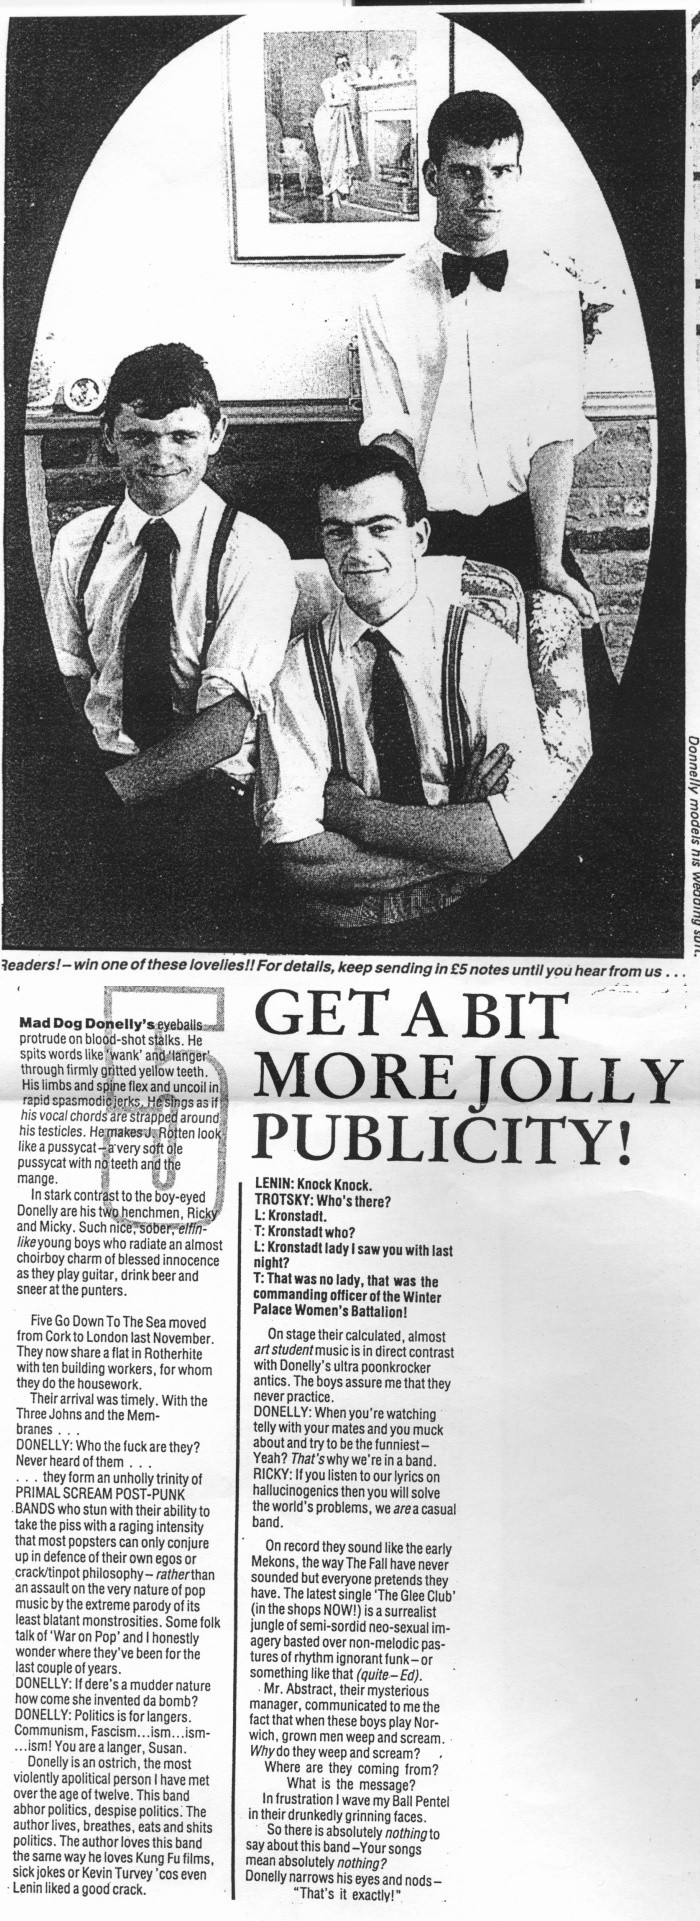 So he begrudgingly took to facebook to sell the suit and also decided -  5 Get A Bit More Jolly Publicity Published In The Nme 3 November 1994 Image From John Byrne